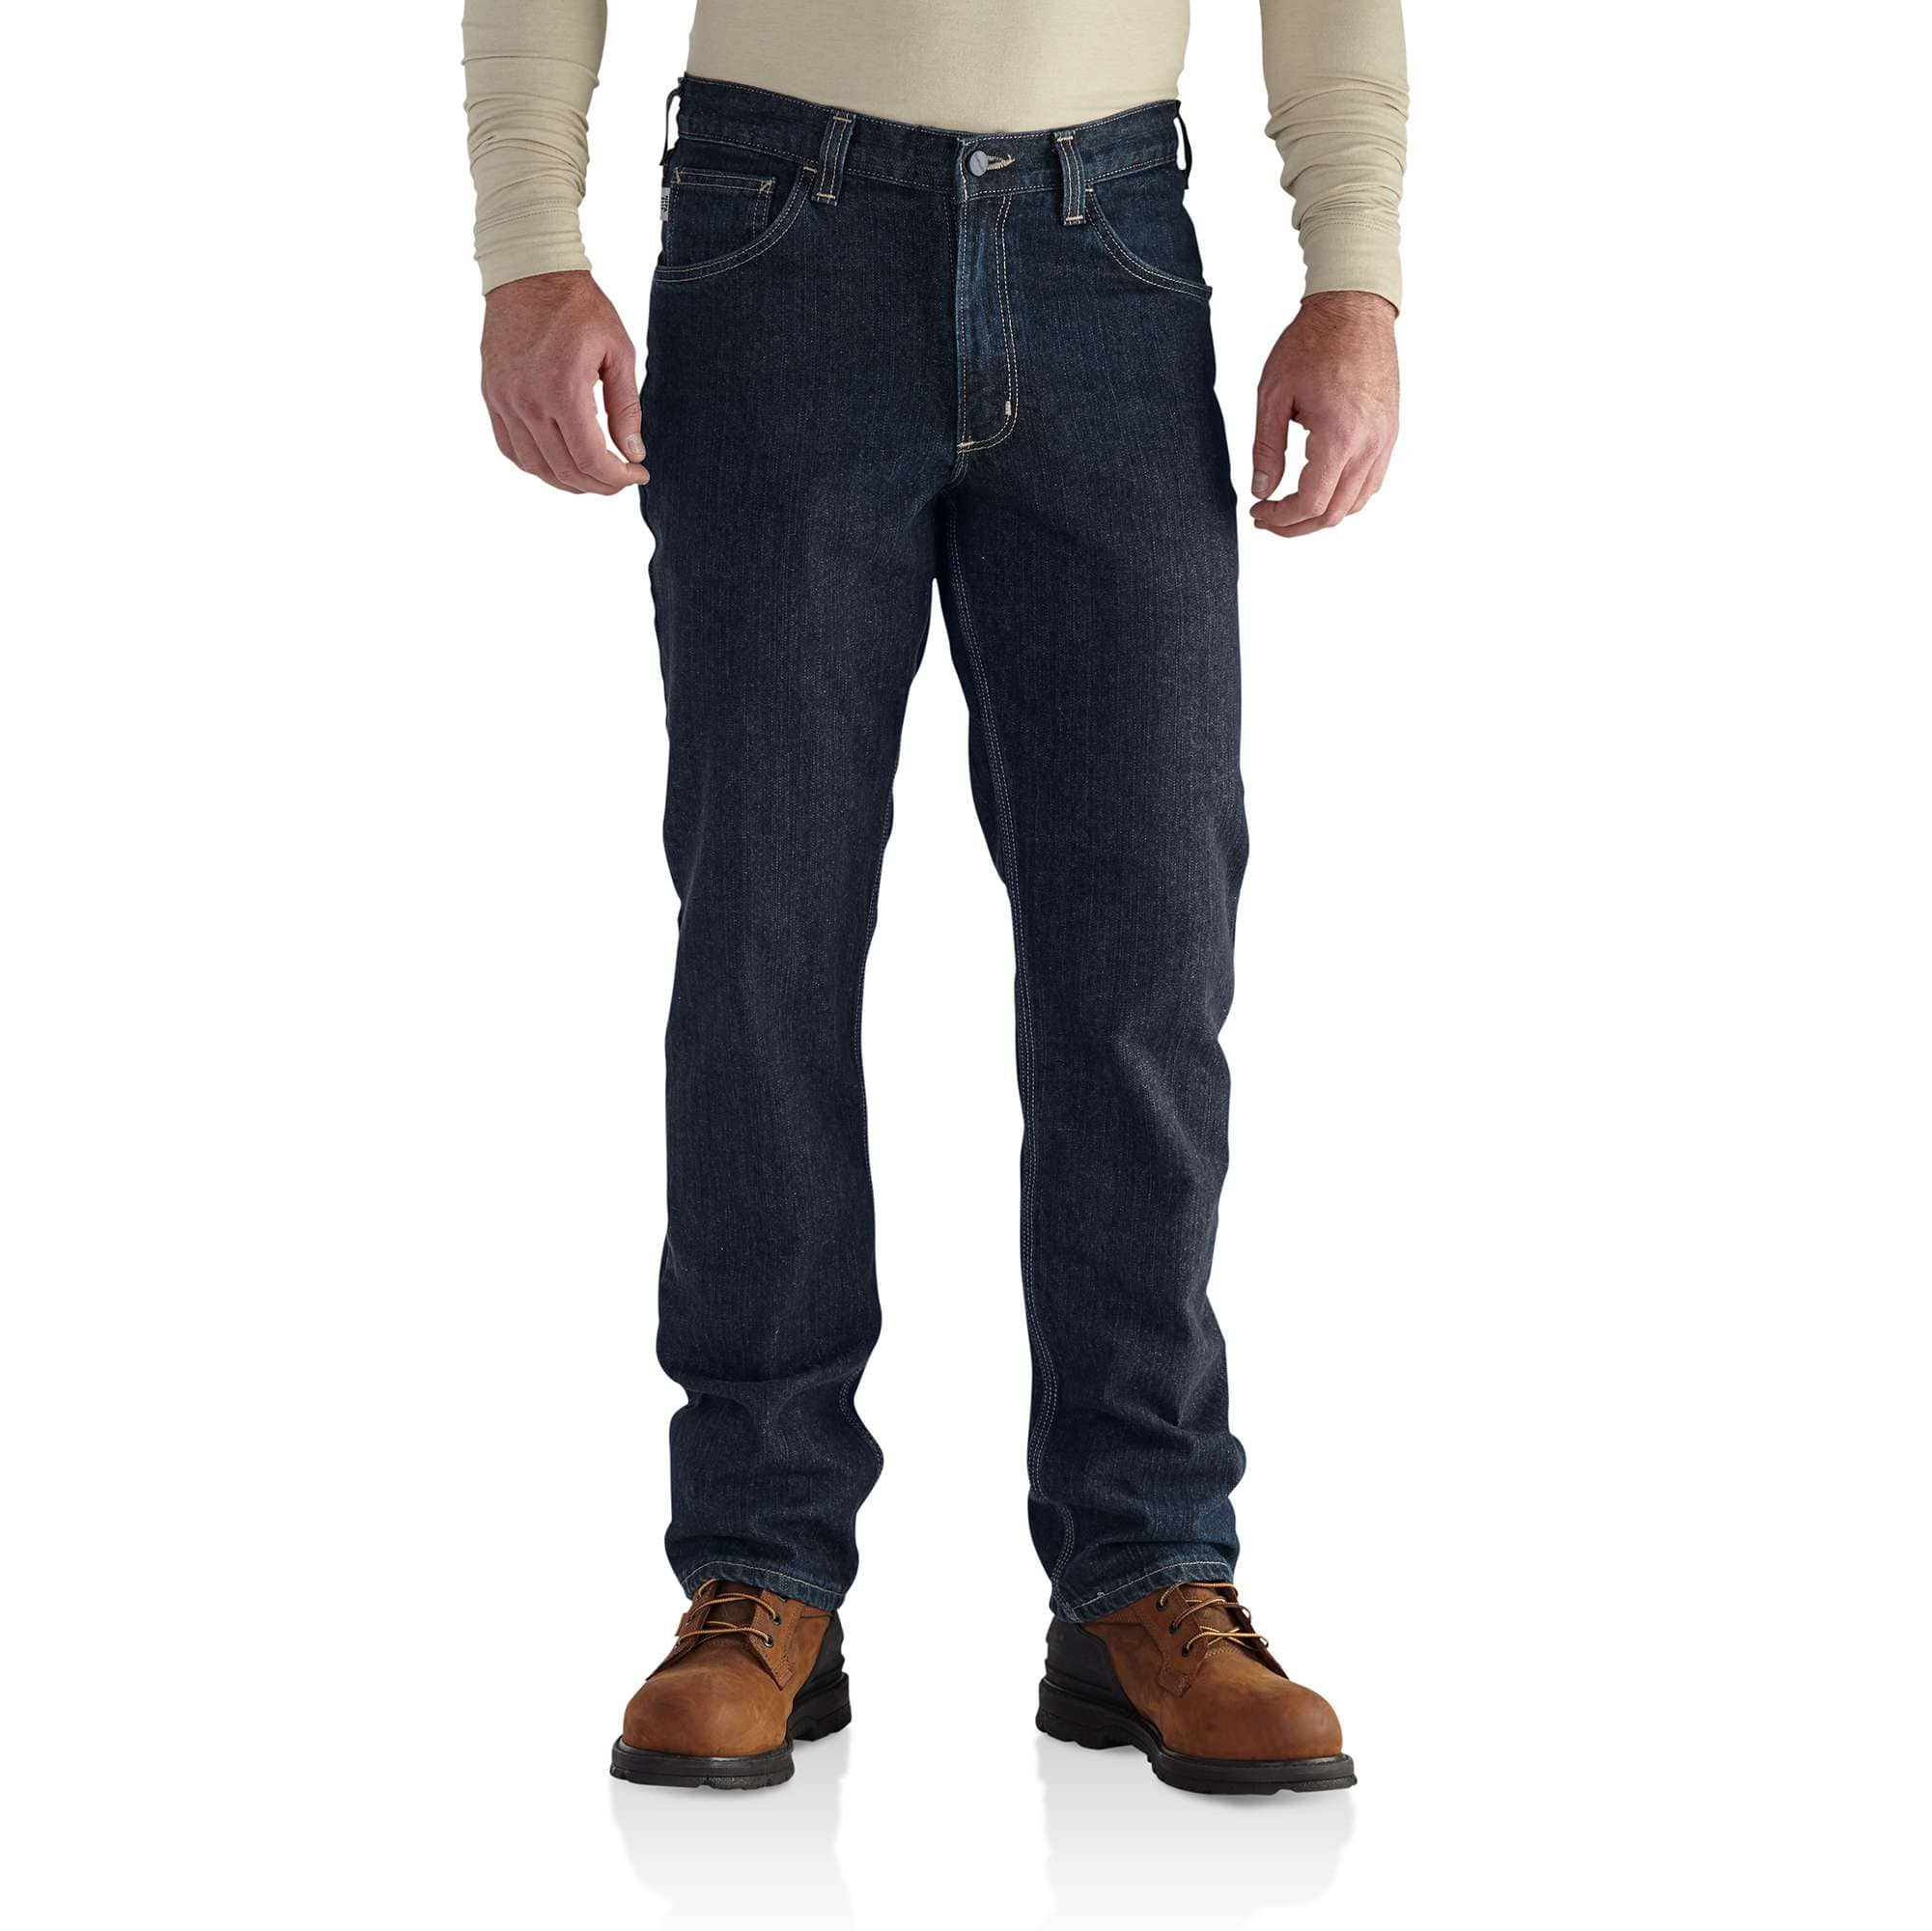 761991a452d0 Men s Flame-Resistant Rugged Flex® Jean - Straight Traditional Fit ...